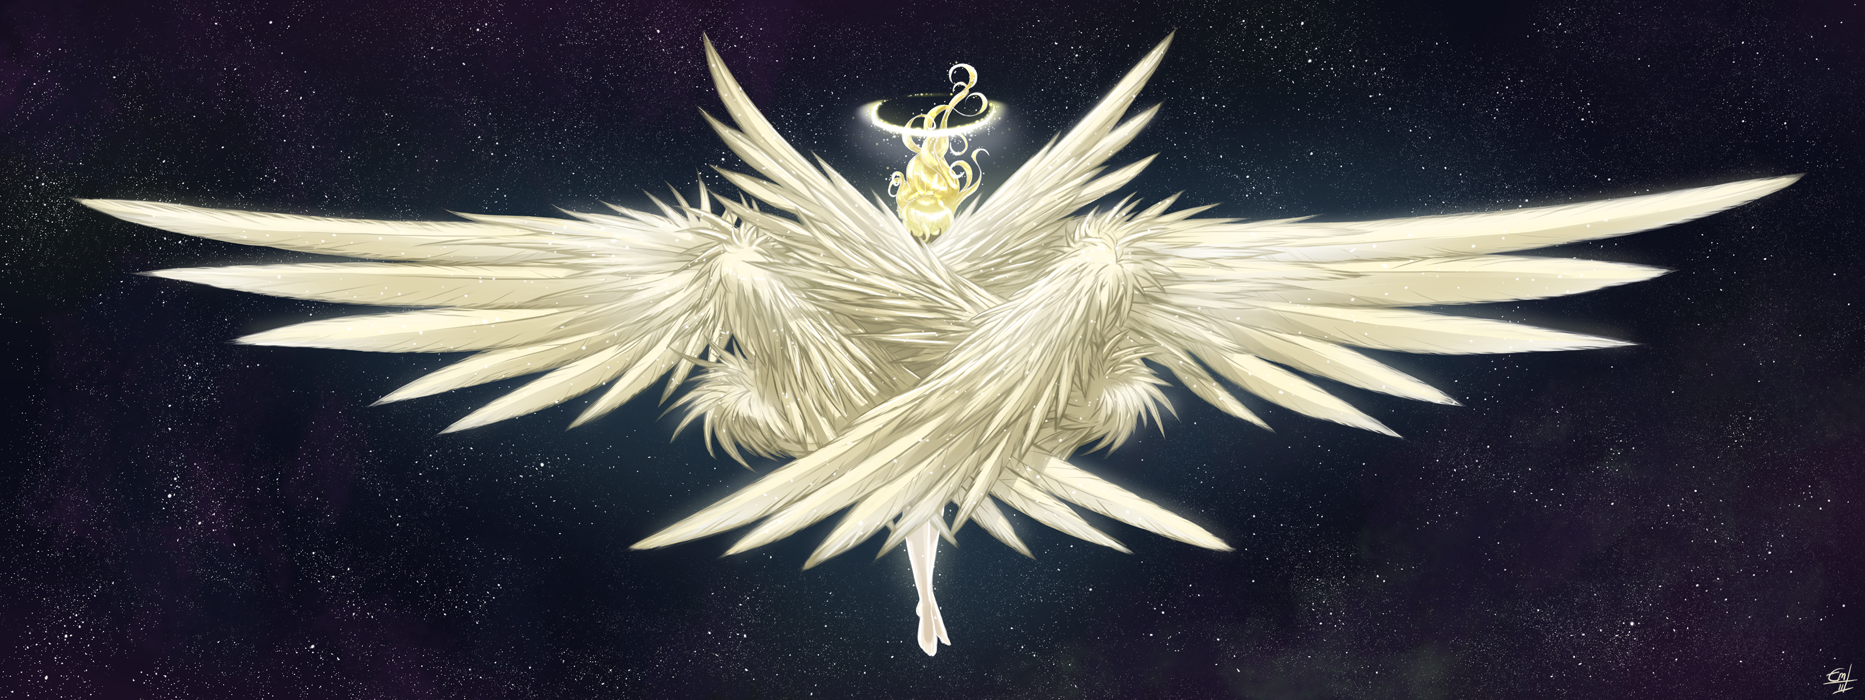 Angels: Seraphim | Paul the Poke